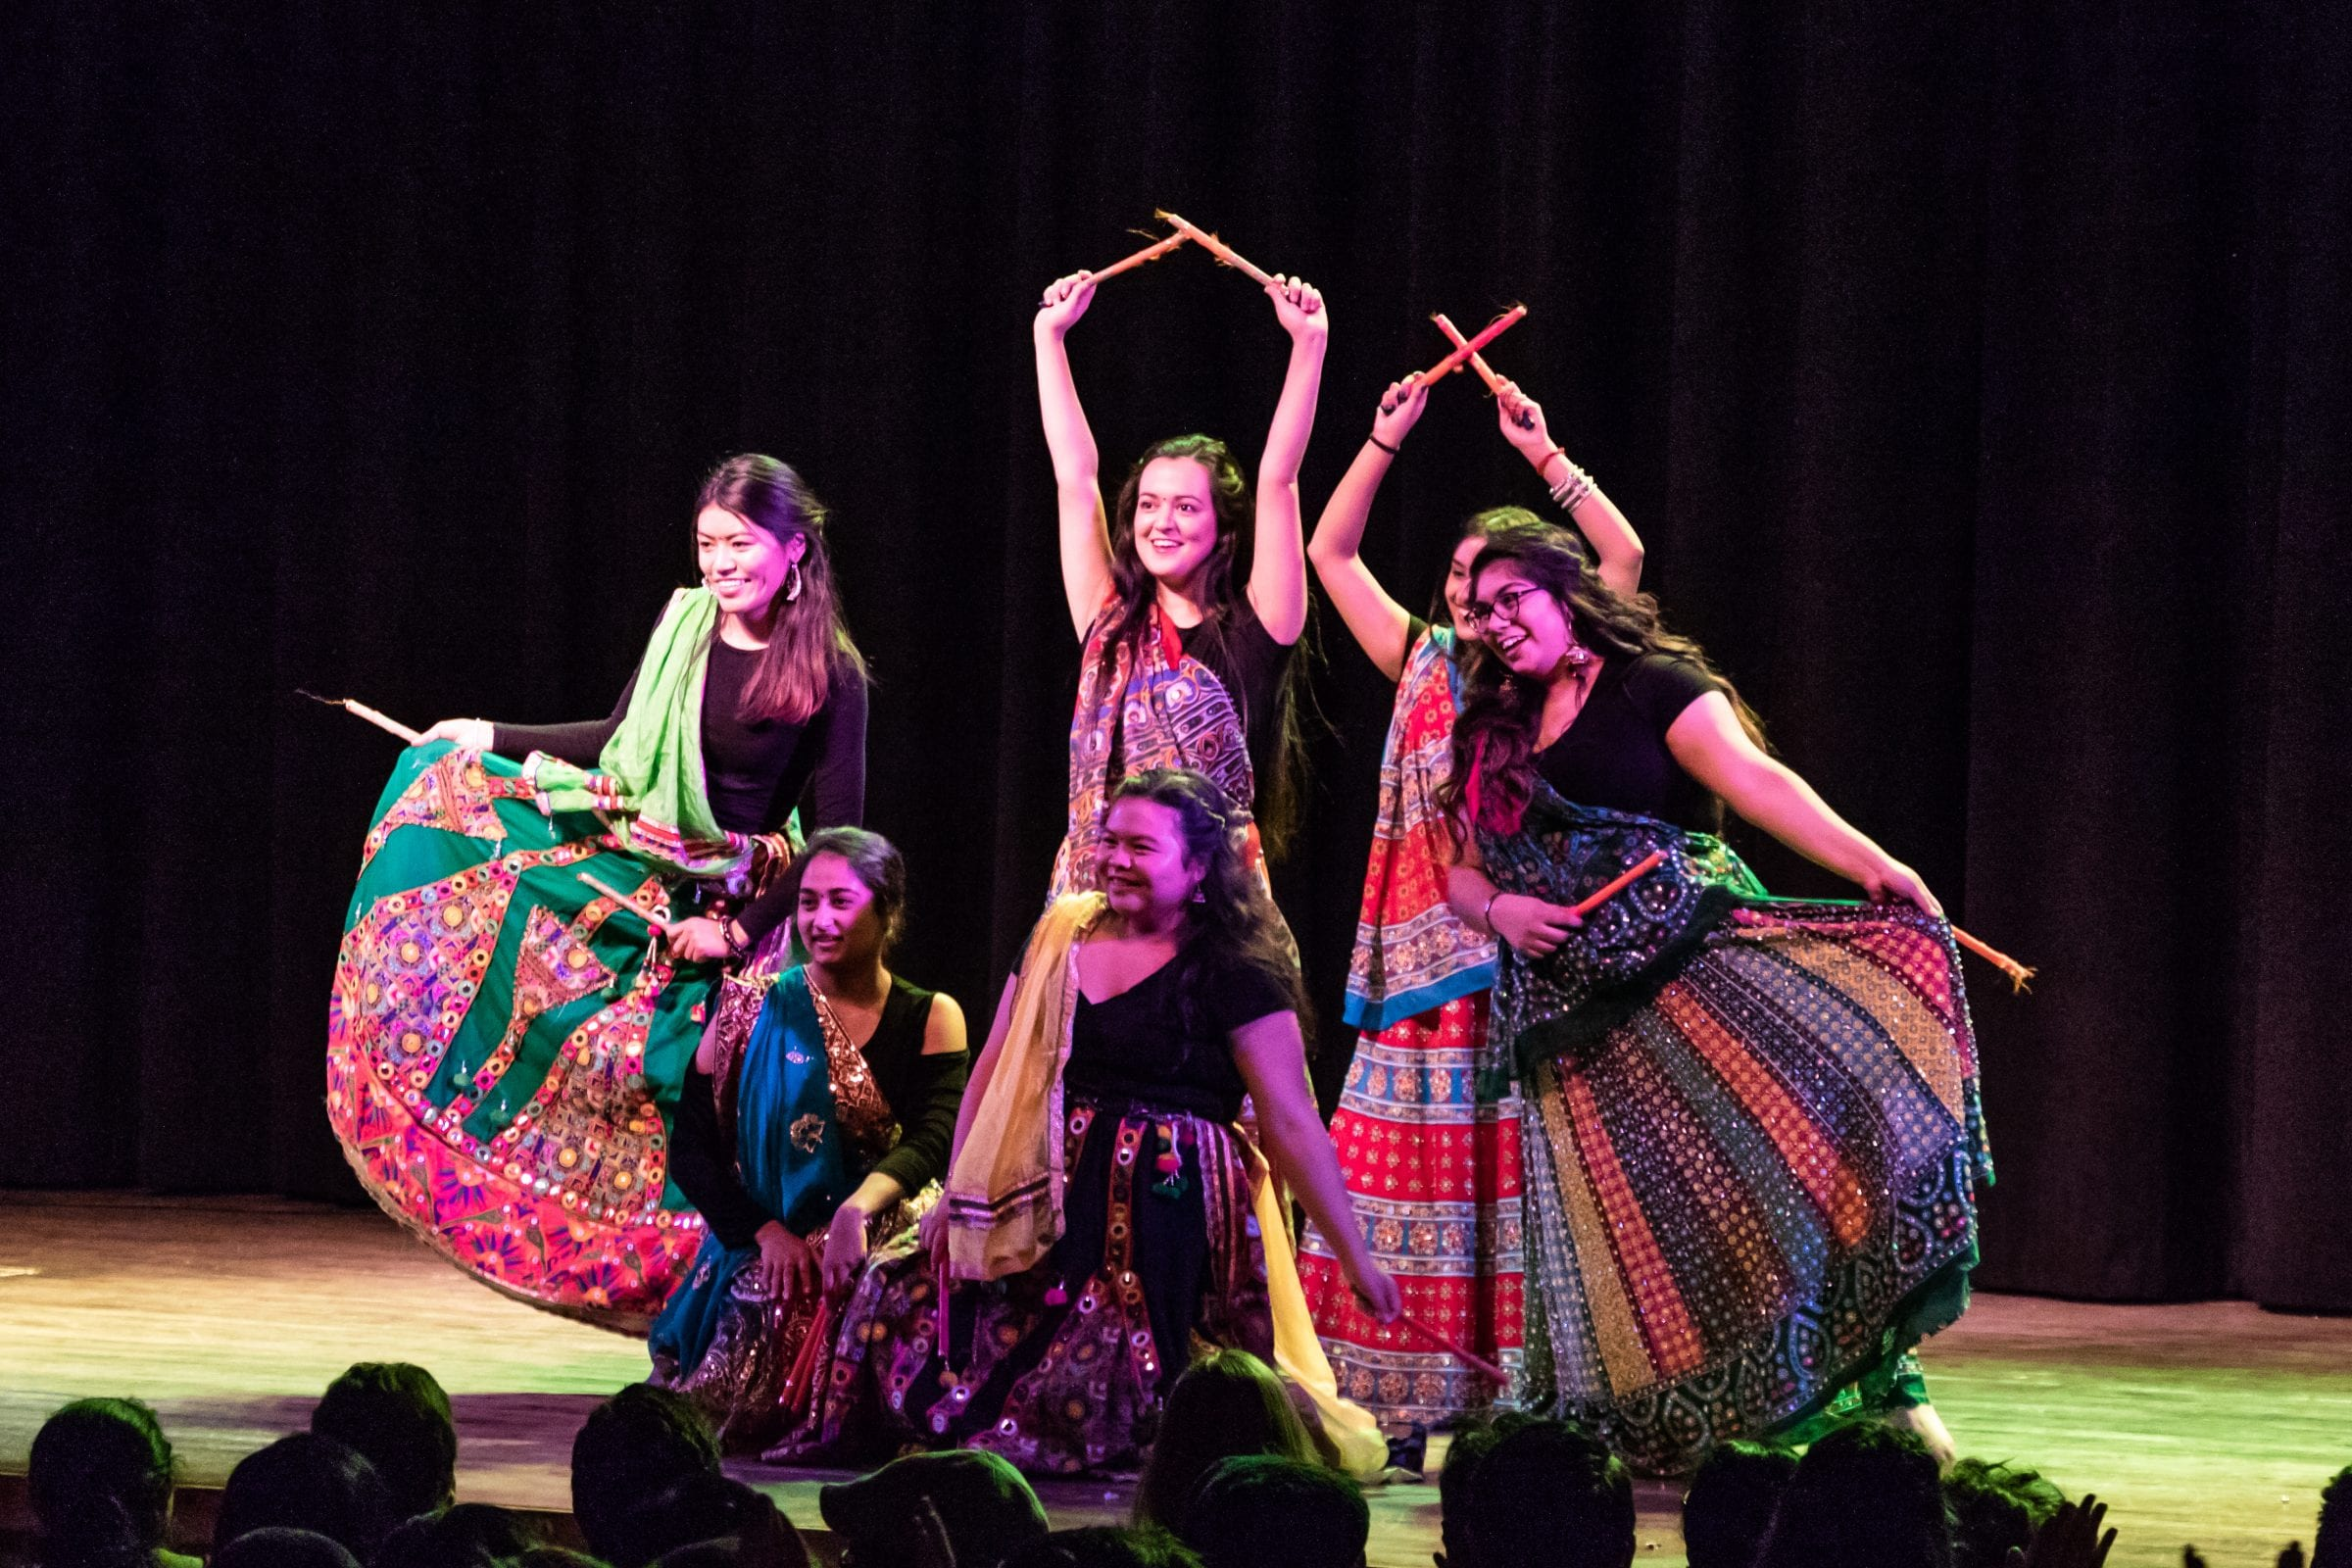 Omkara celebrates South Asian culture and traditions